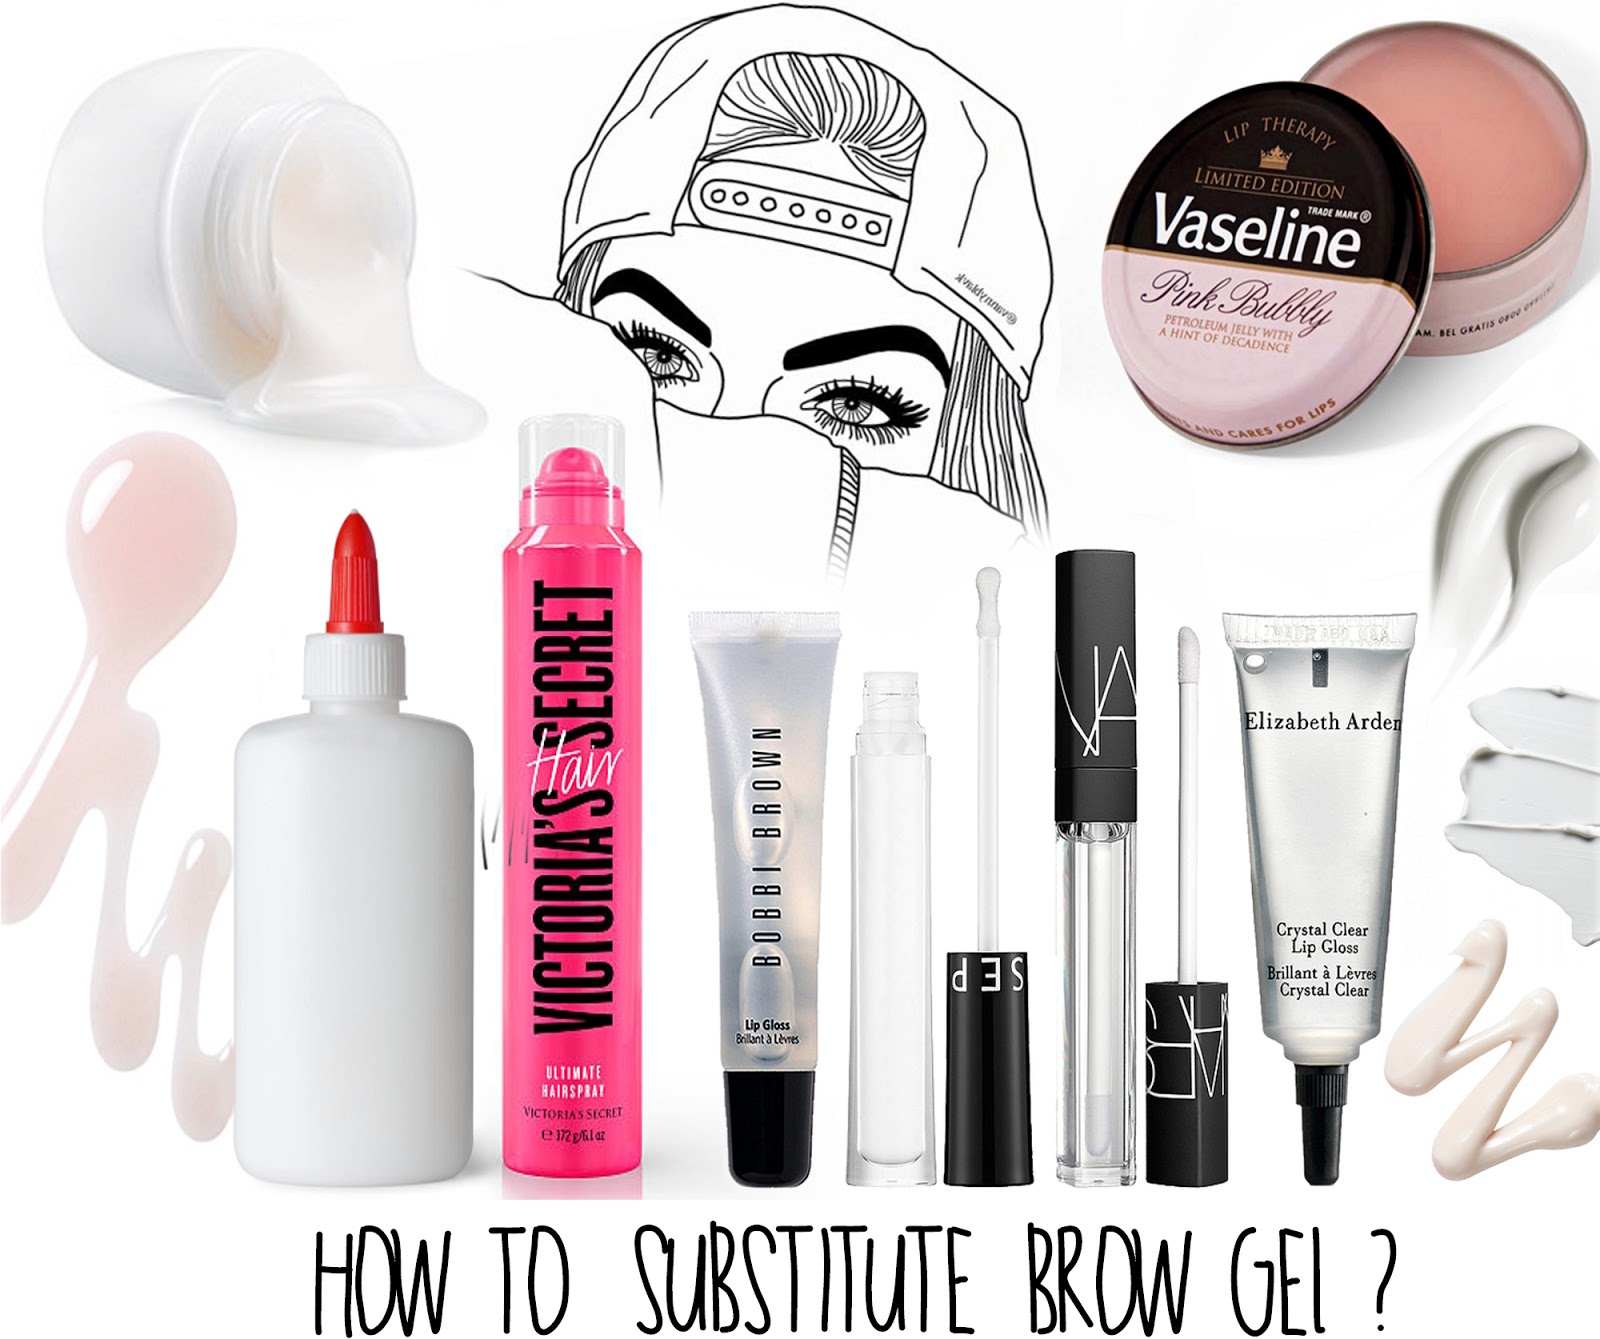 Substitute Brow Gel  alternatives for eyebrow gel brows